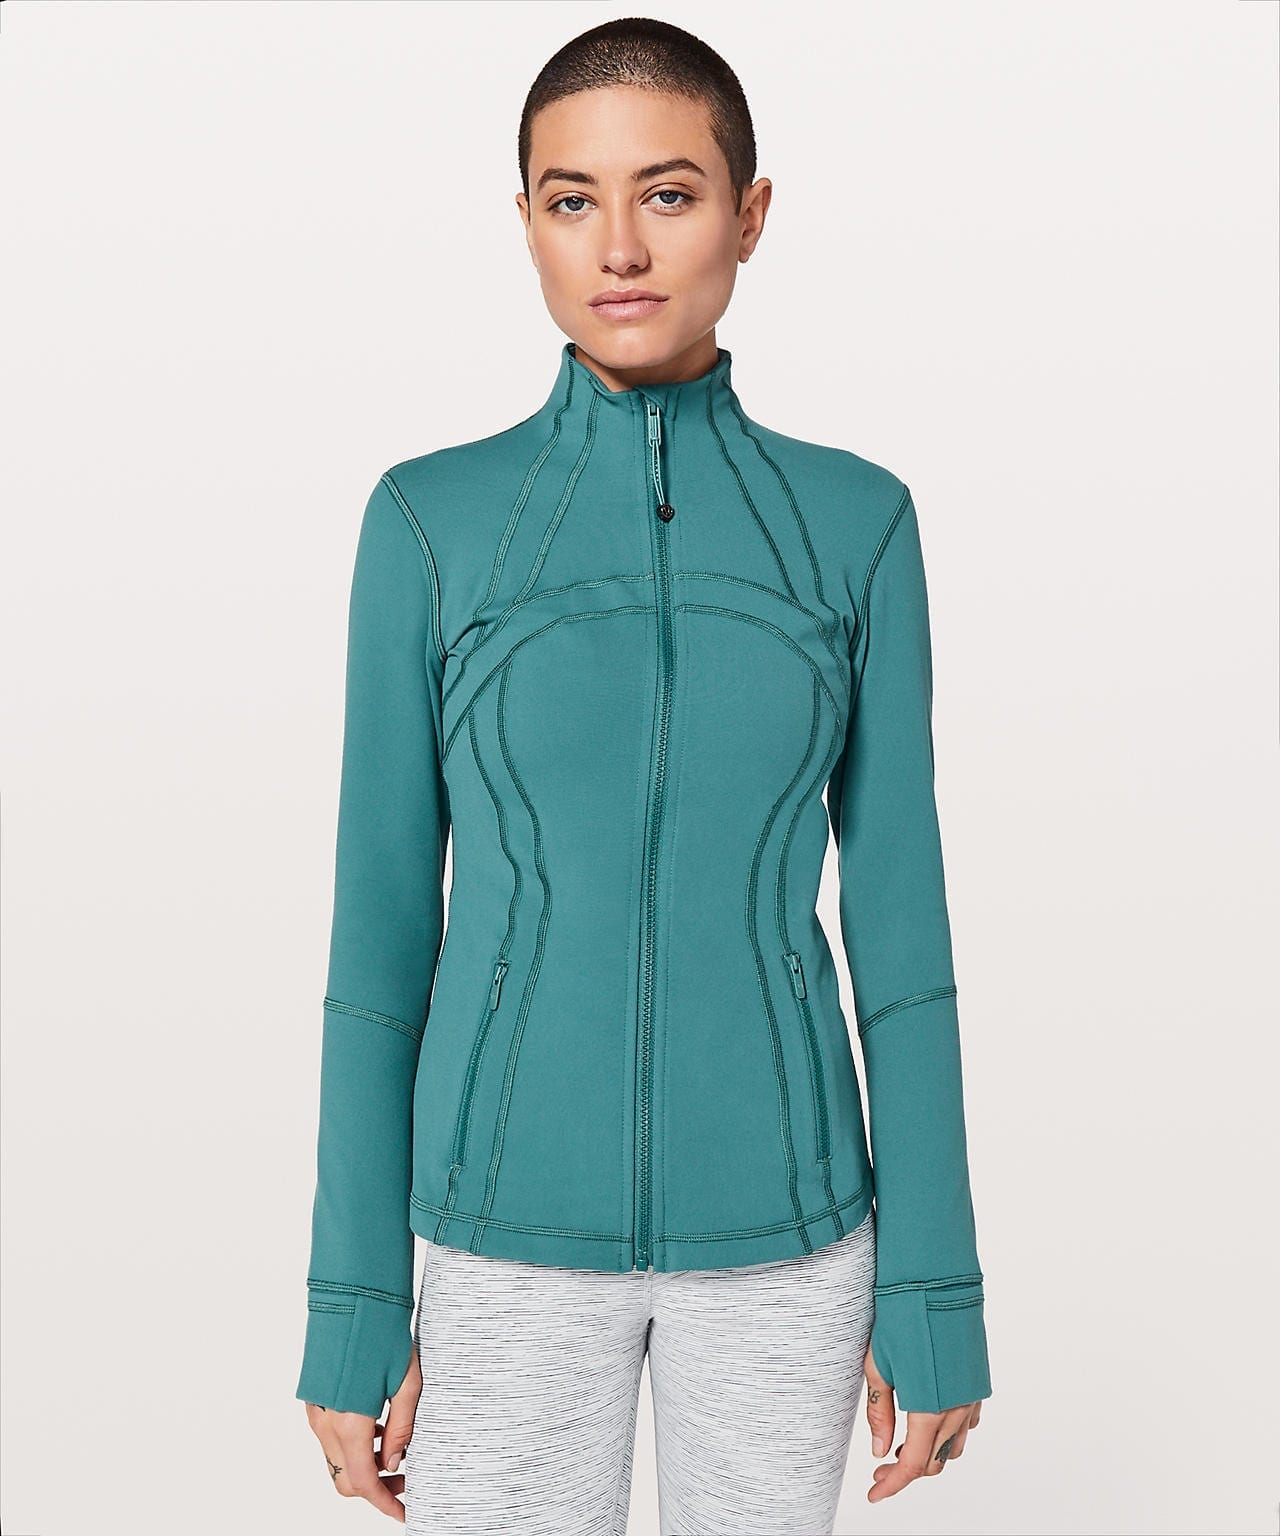 Define Jacket, Deep Cove, Lululemon